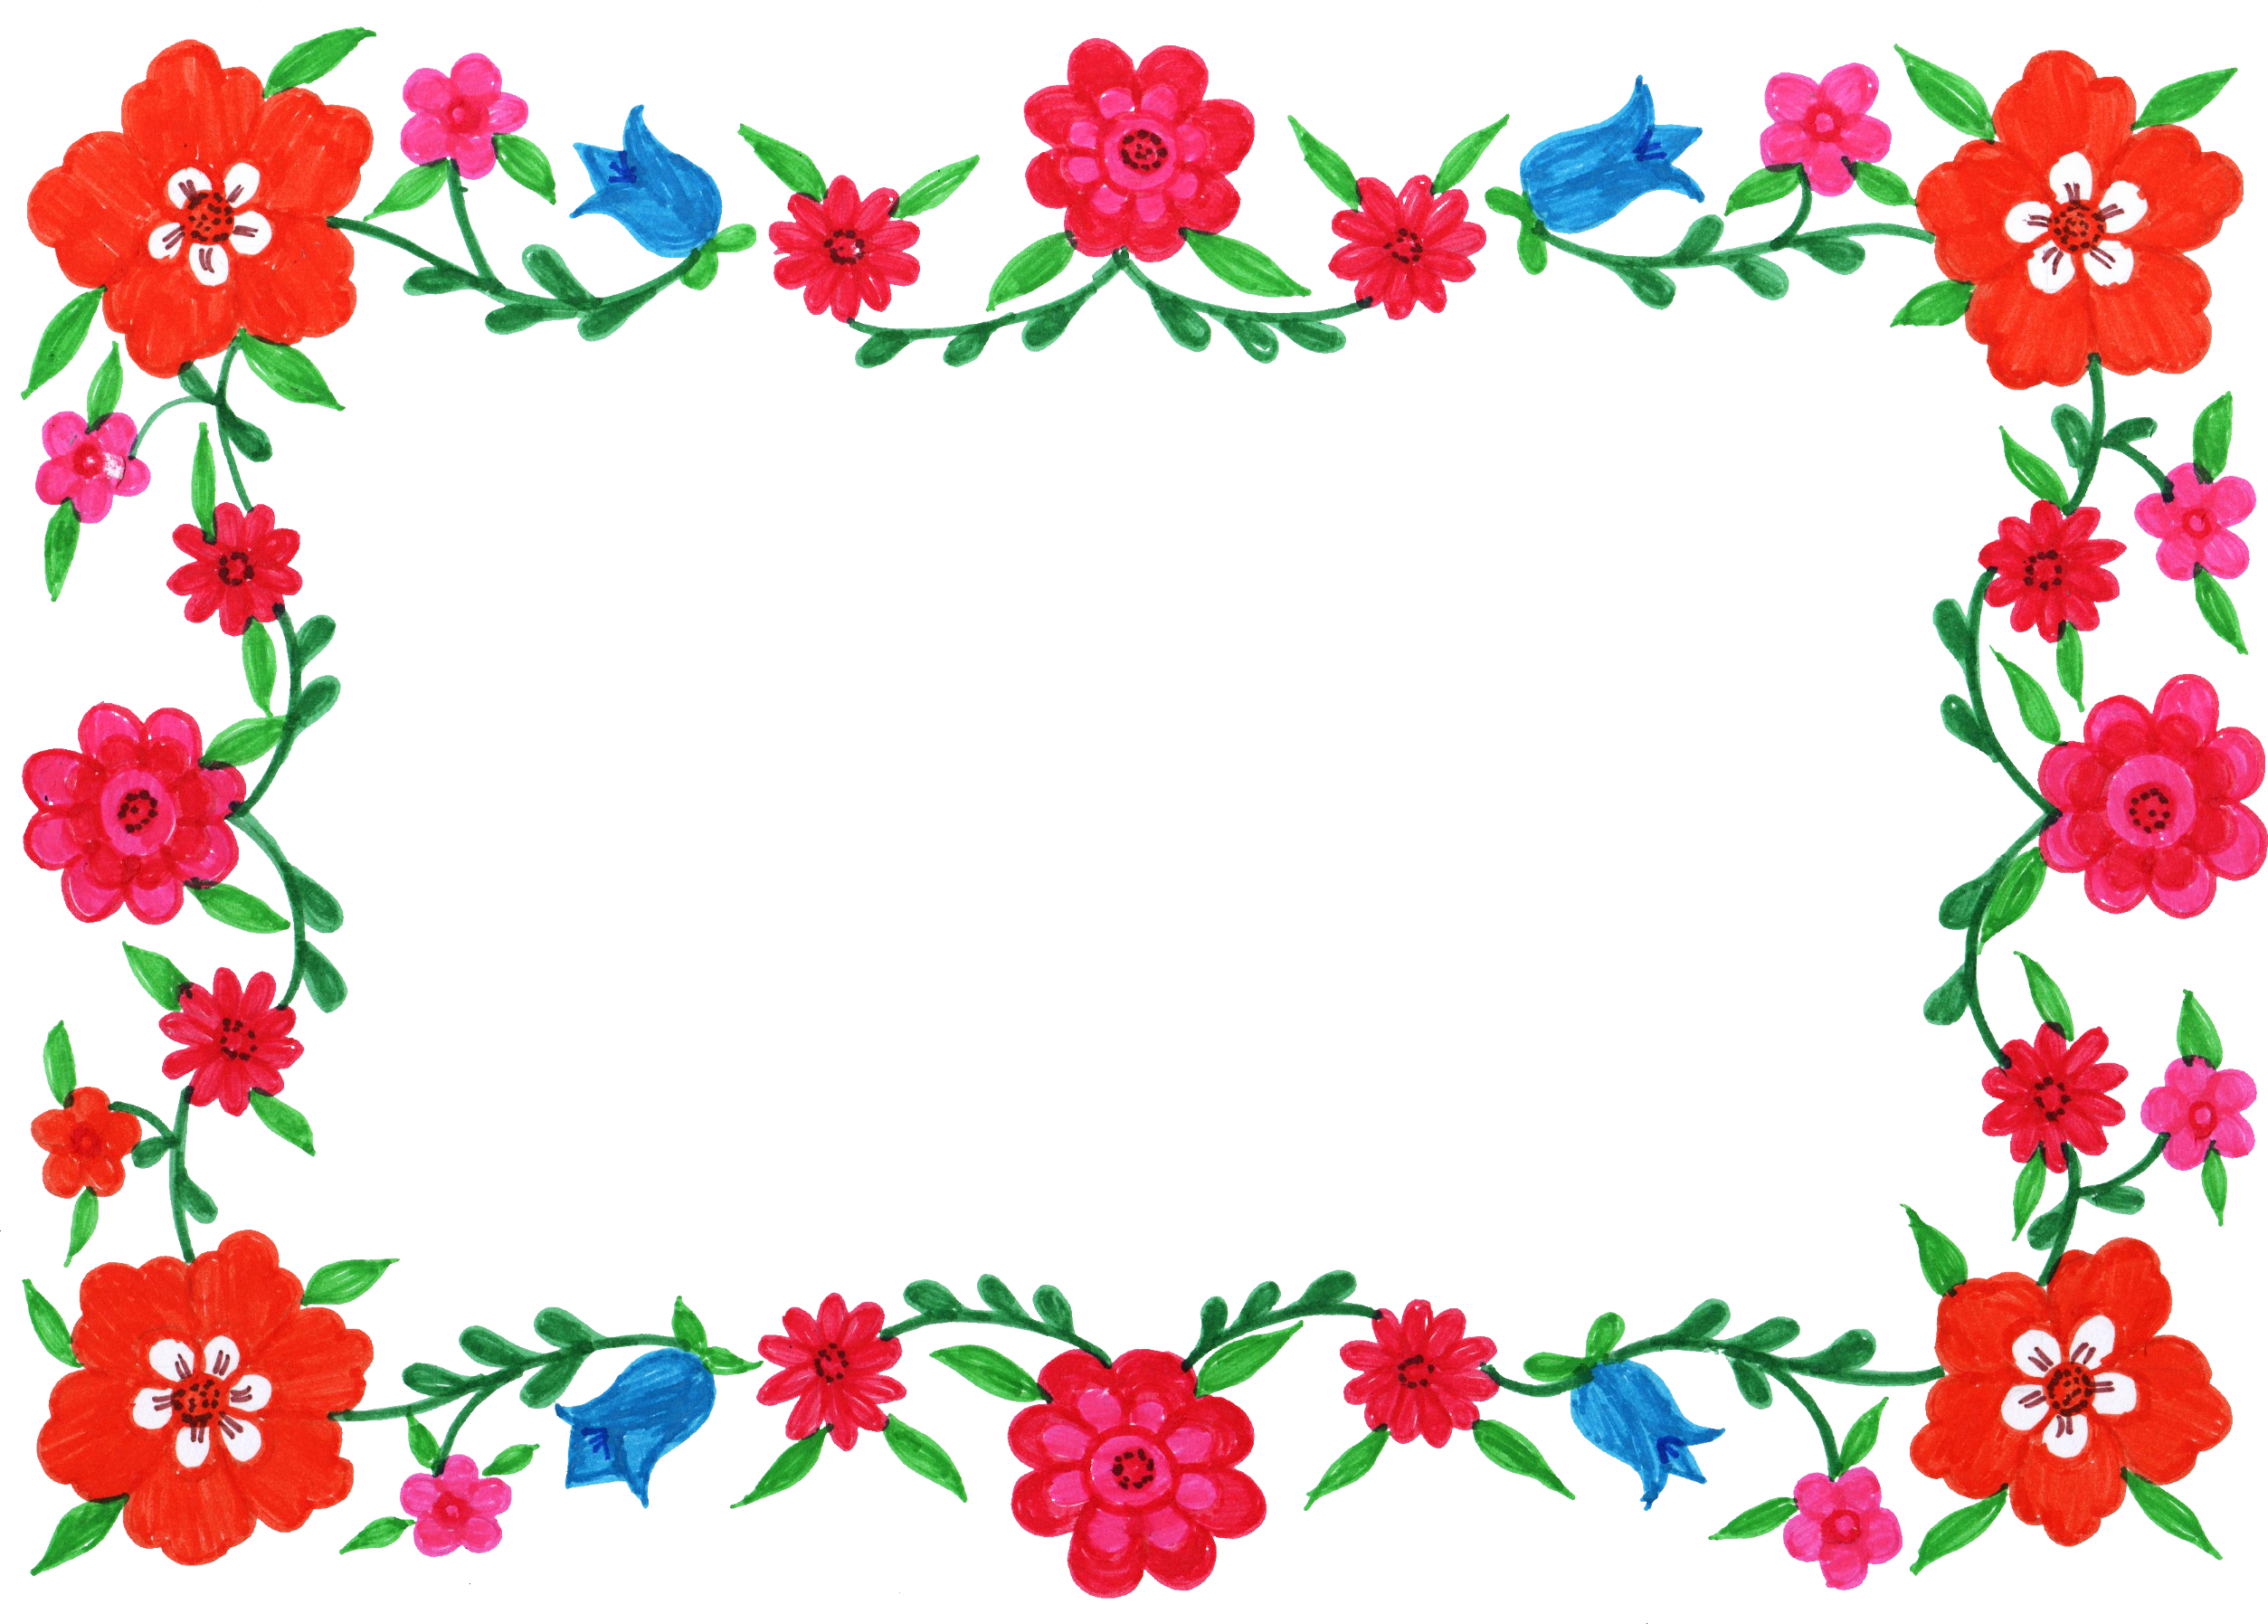 Red Flower Images Of Video Frame image #47688